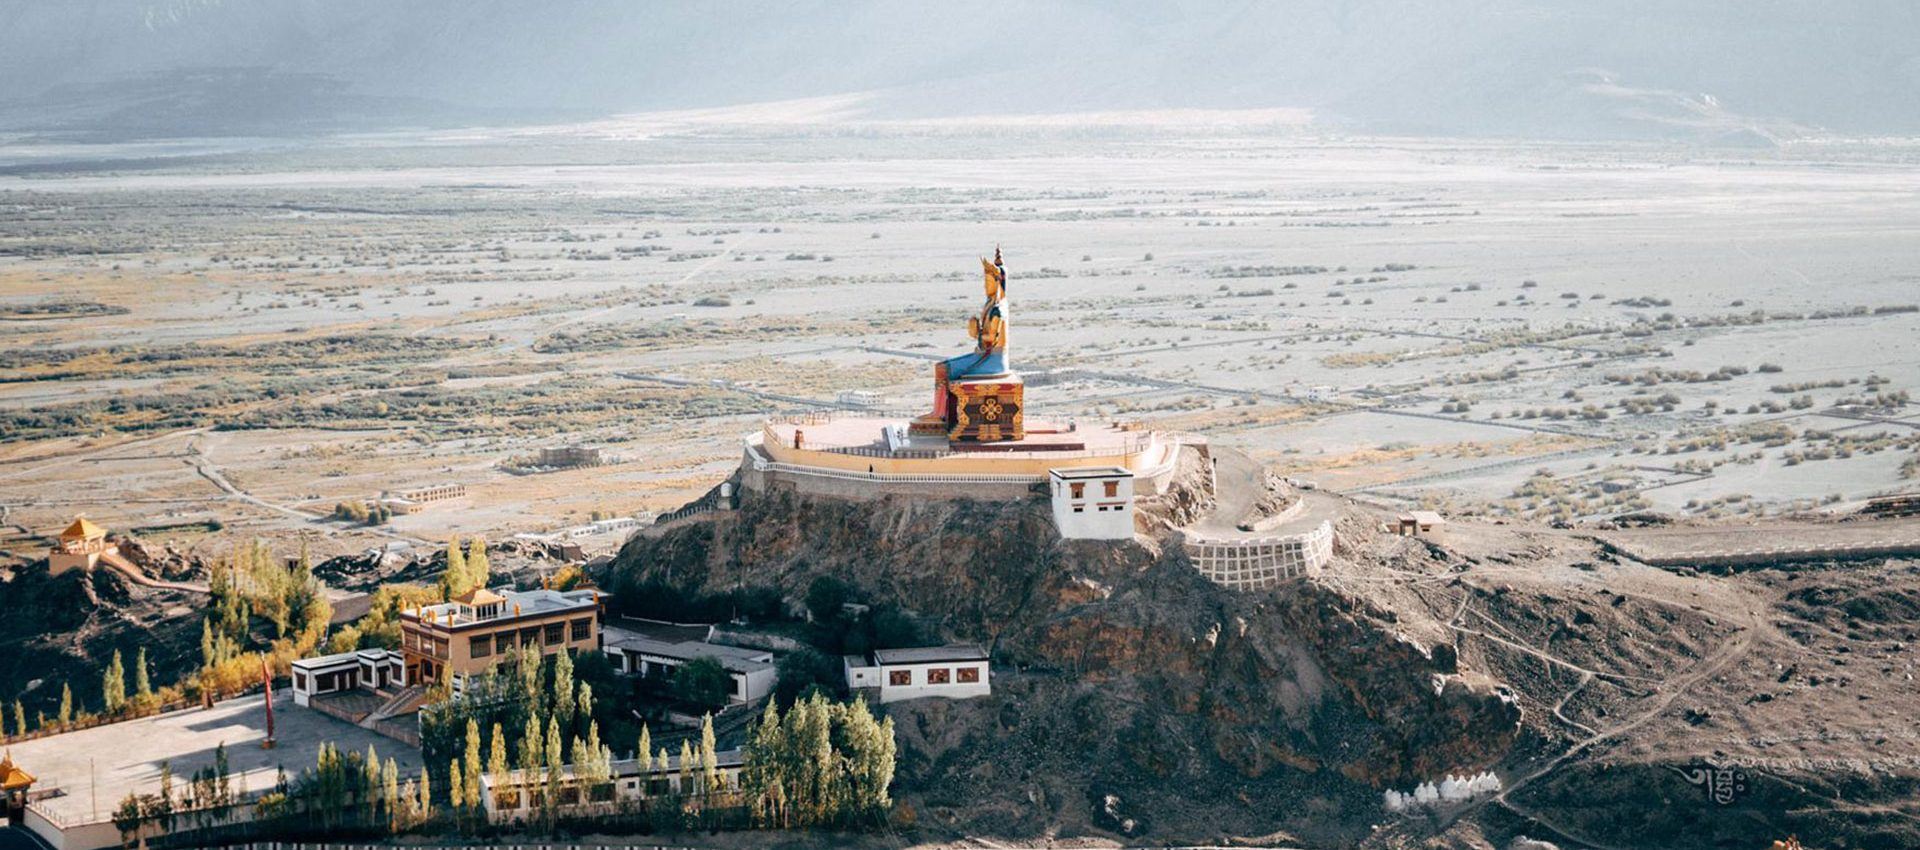 The impressive 32 meter tall Buddha statue of the Diskit monastery facing the Pakistani border spreads peace throughout the Valley.